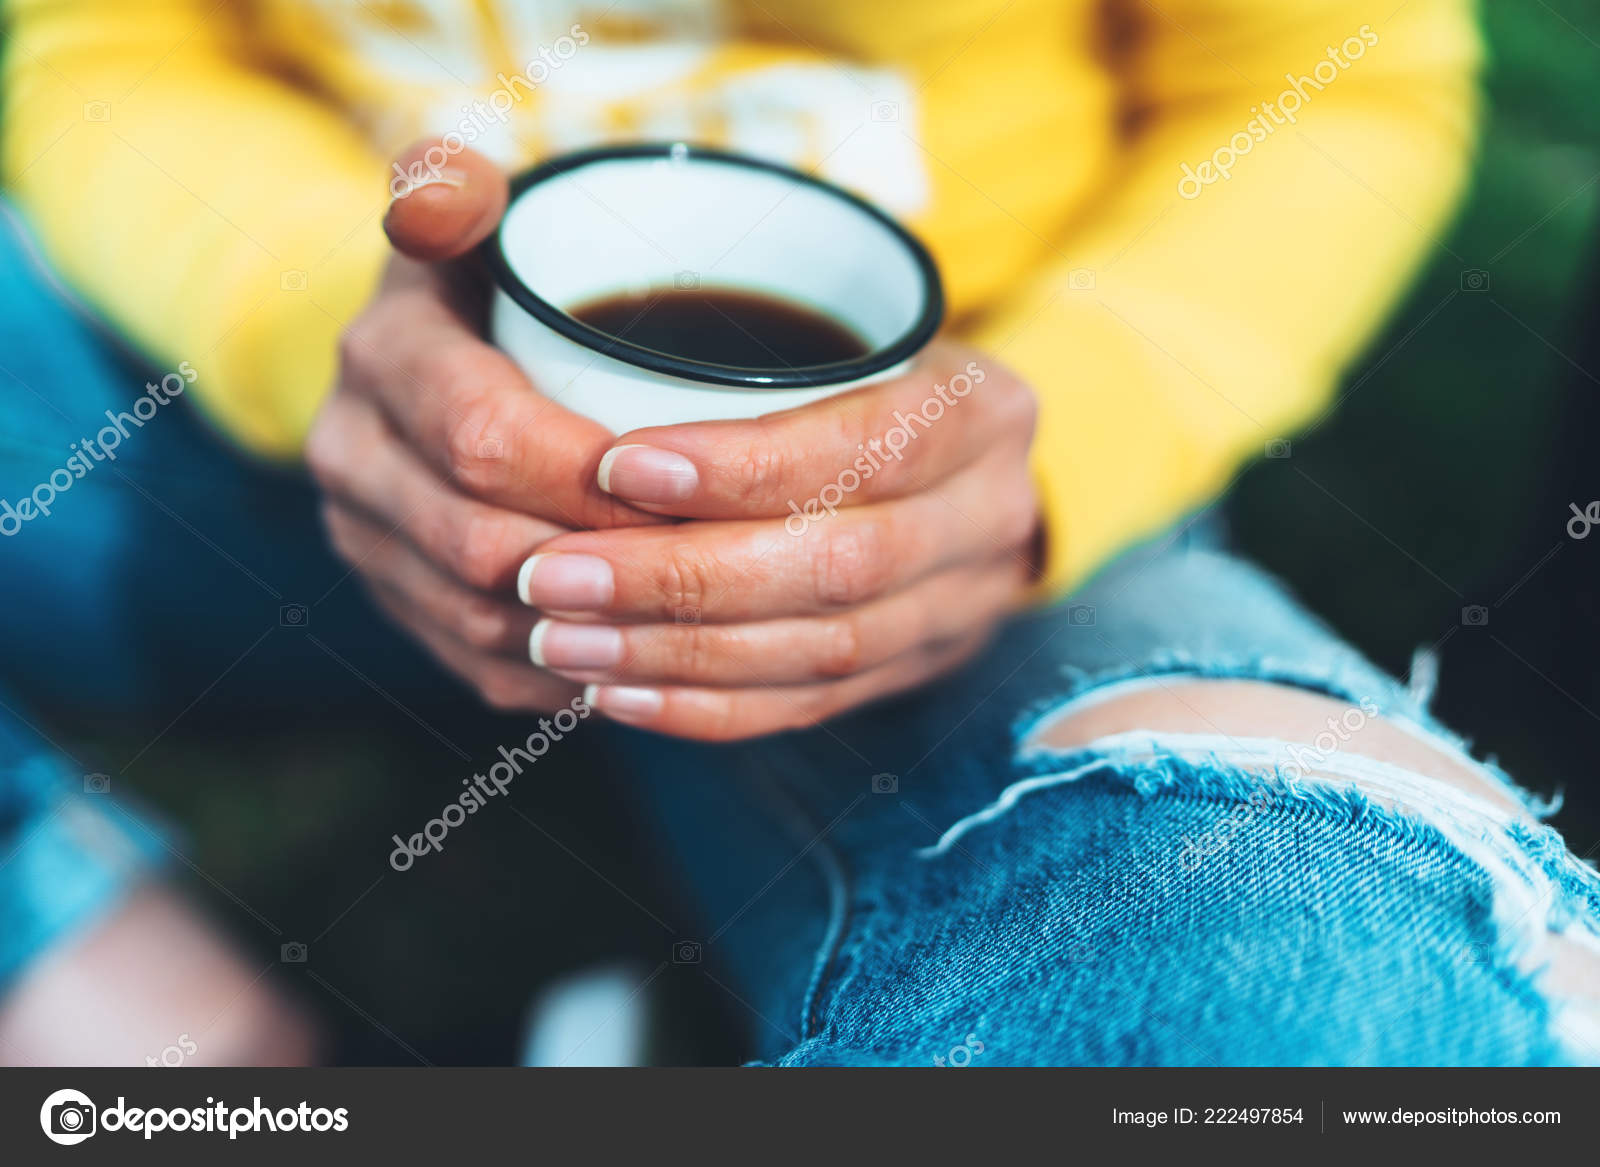 Girl Holding Hands Cup Hot Tea Yellow Backgroung Outdoors